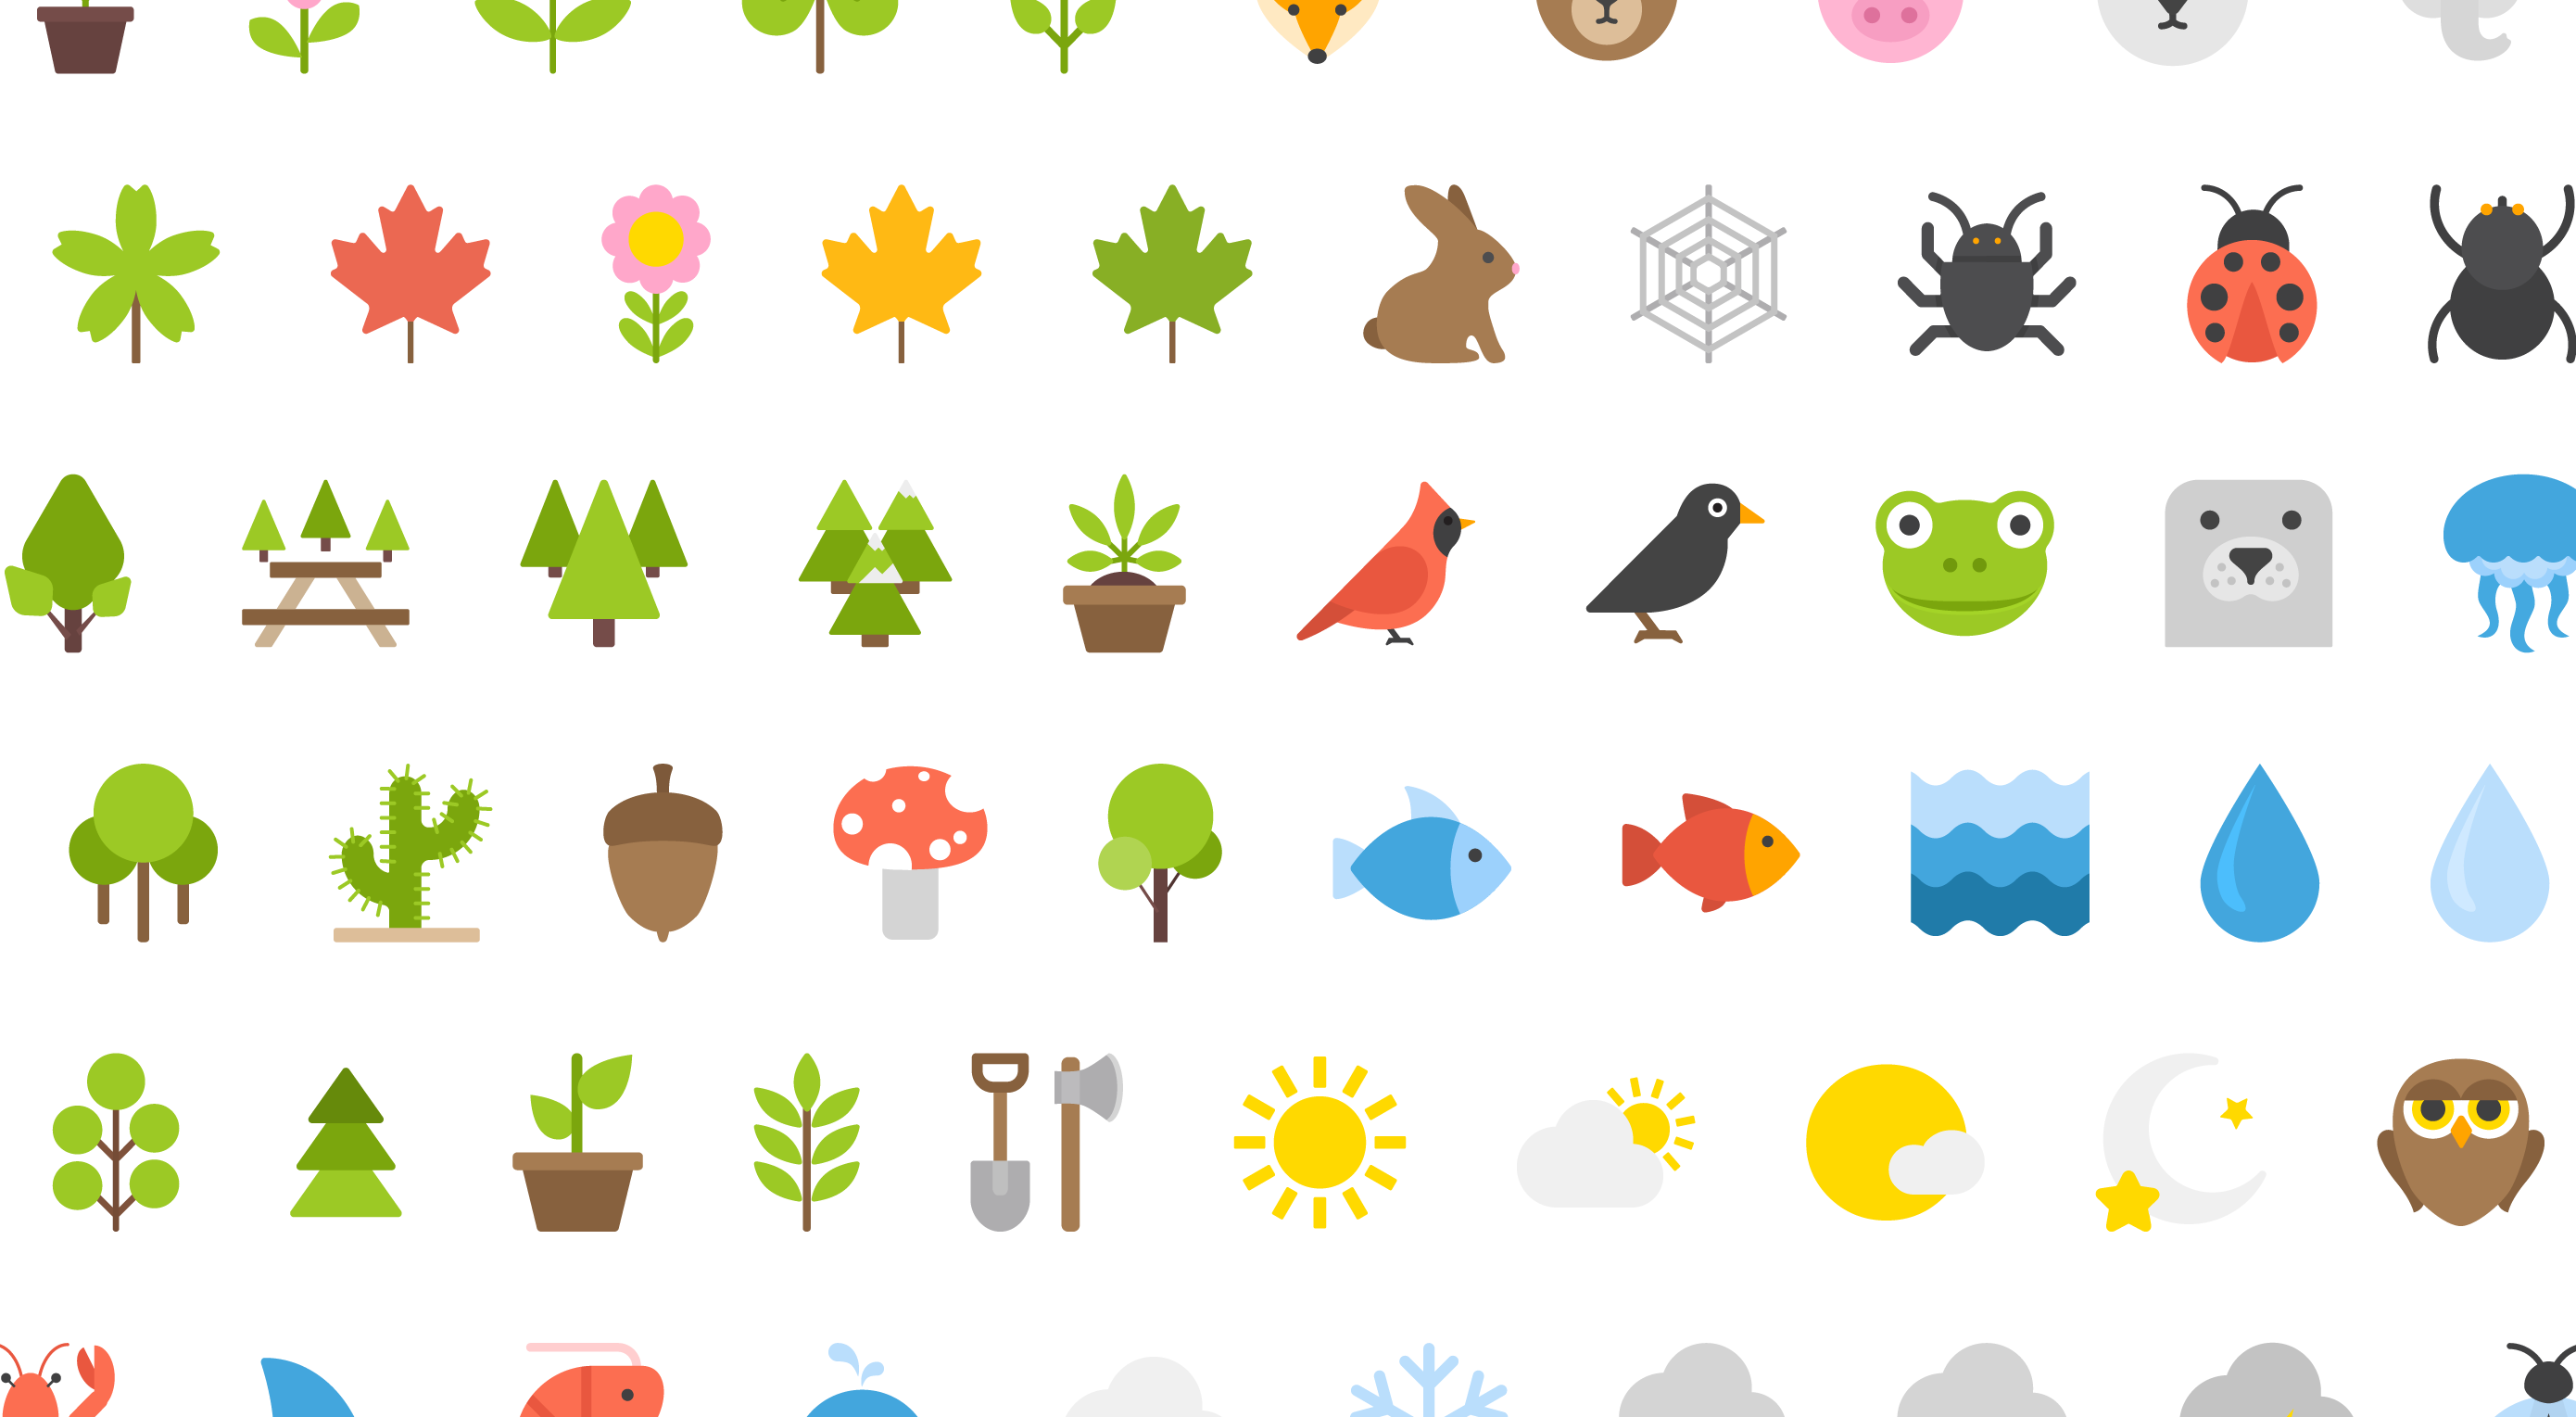 Free Download: 100 Nature Icons by Vecteezy